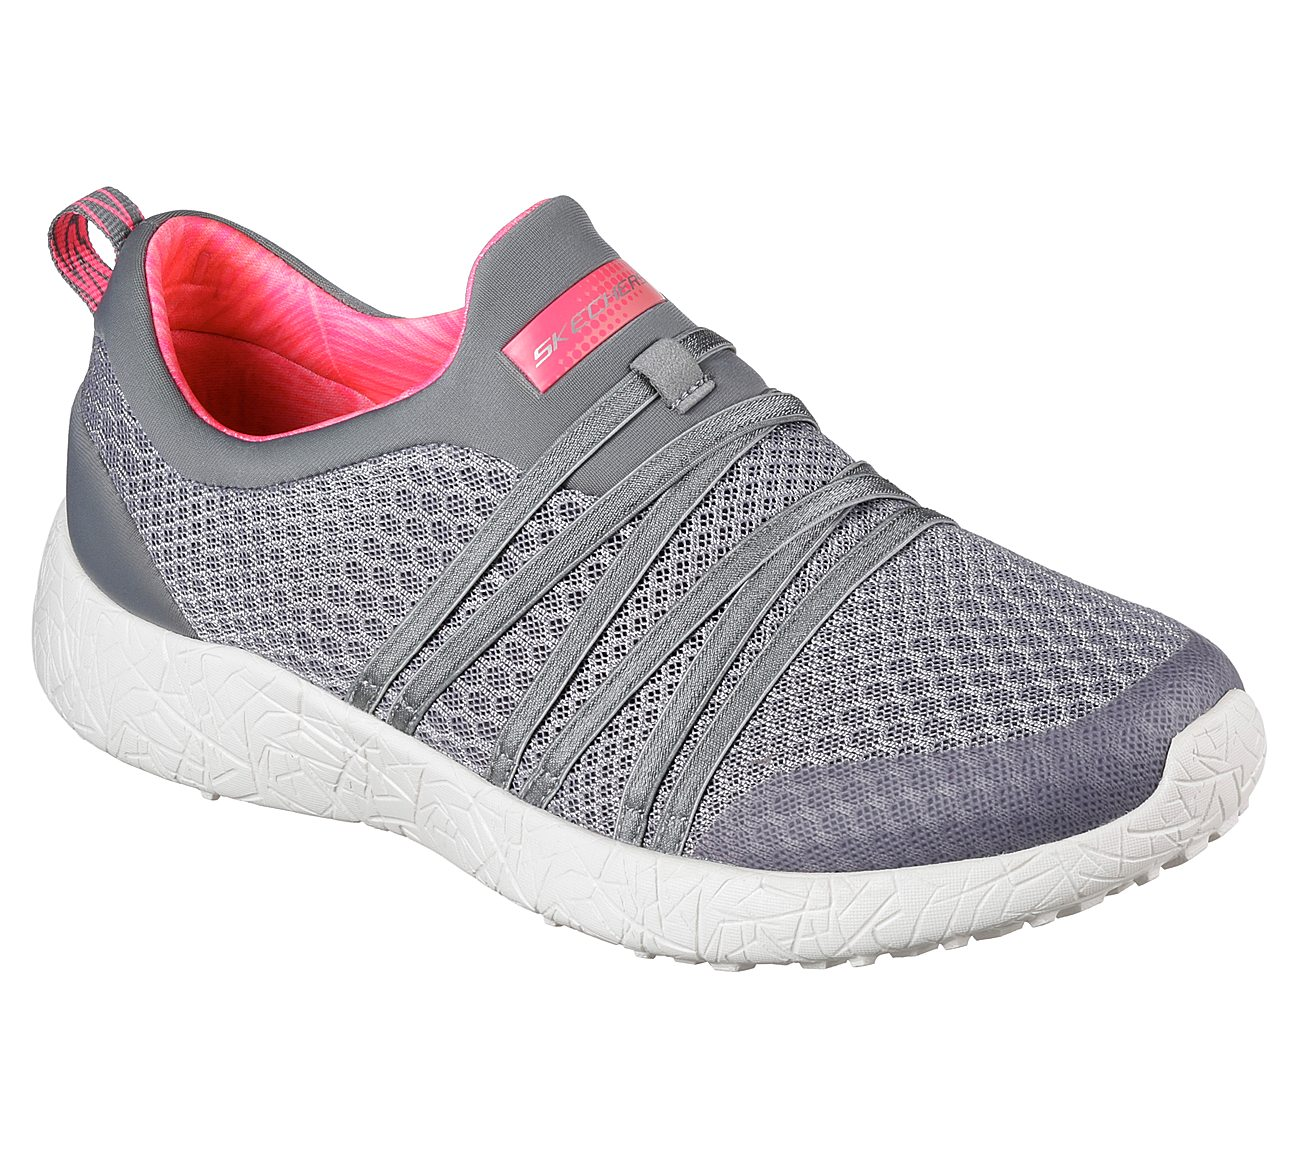 Shop for Skechers at Ebates. Save on Skechers featured products with coupon codes, Stores: Academy Sports & Outdoors, Bluefly, Dick's Sporting Goods, JCPenney and more.